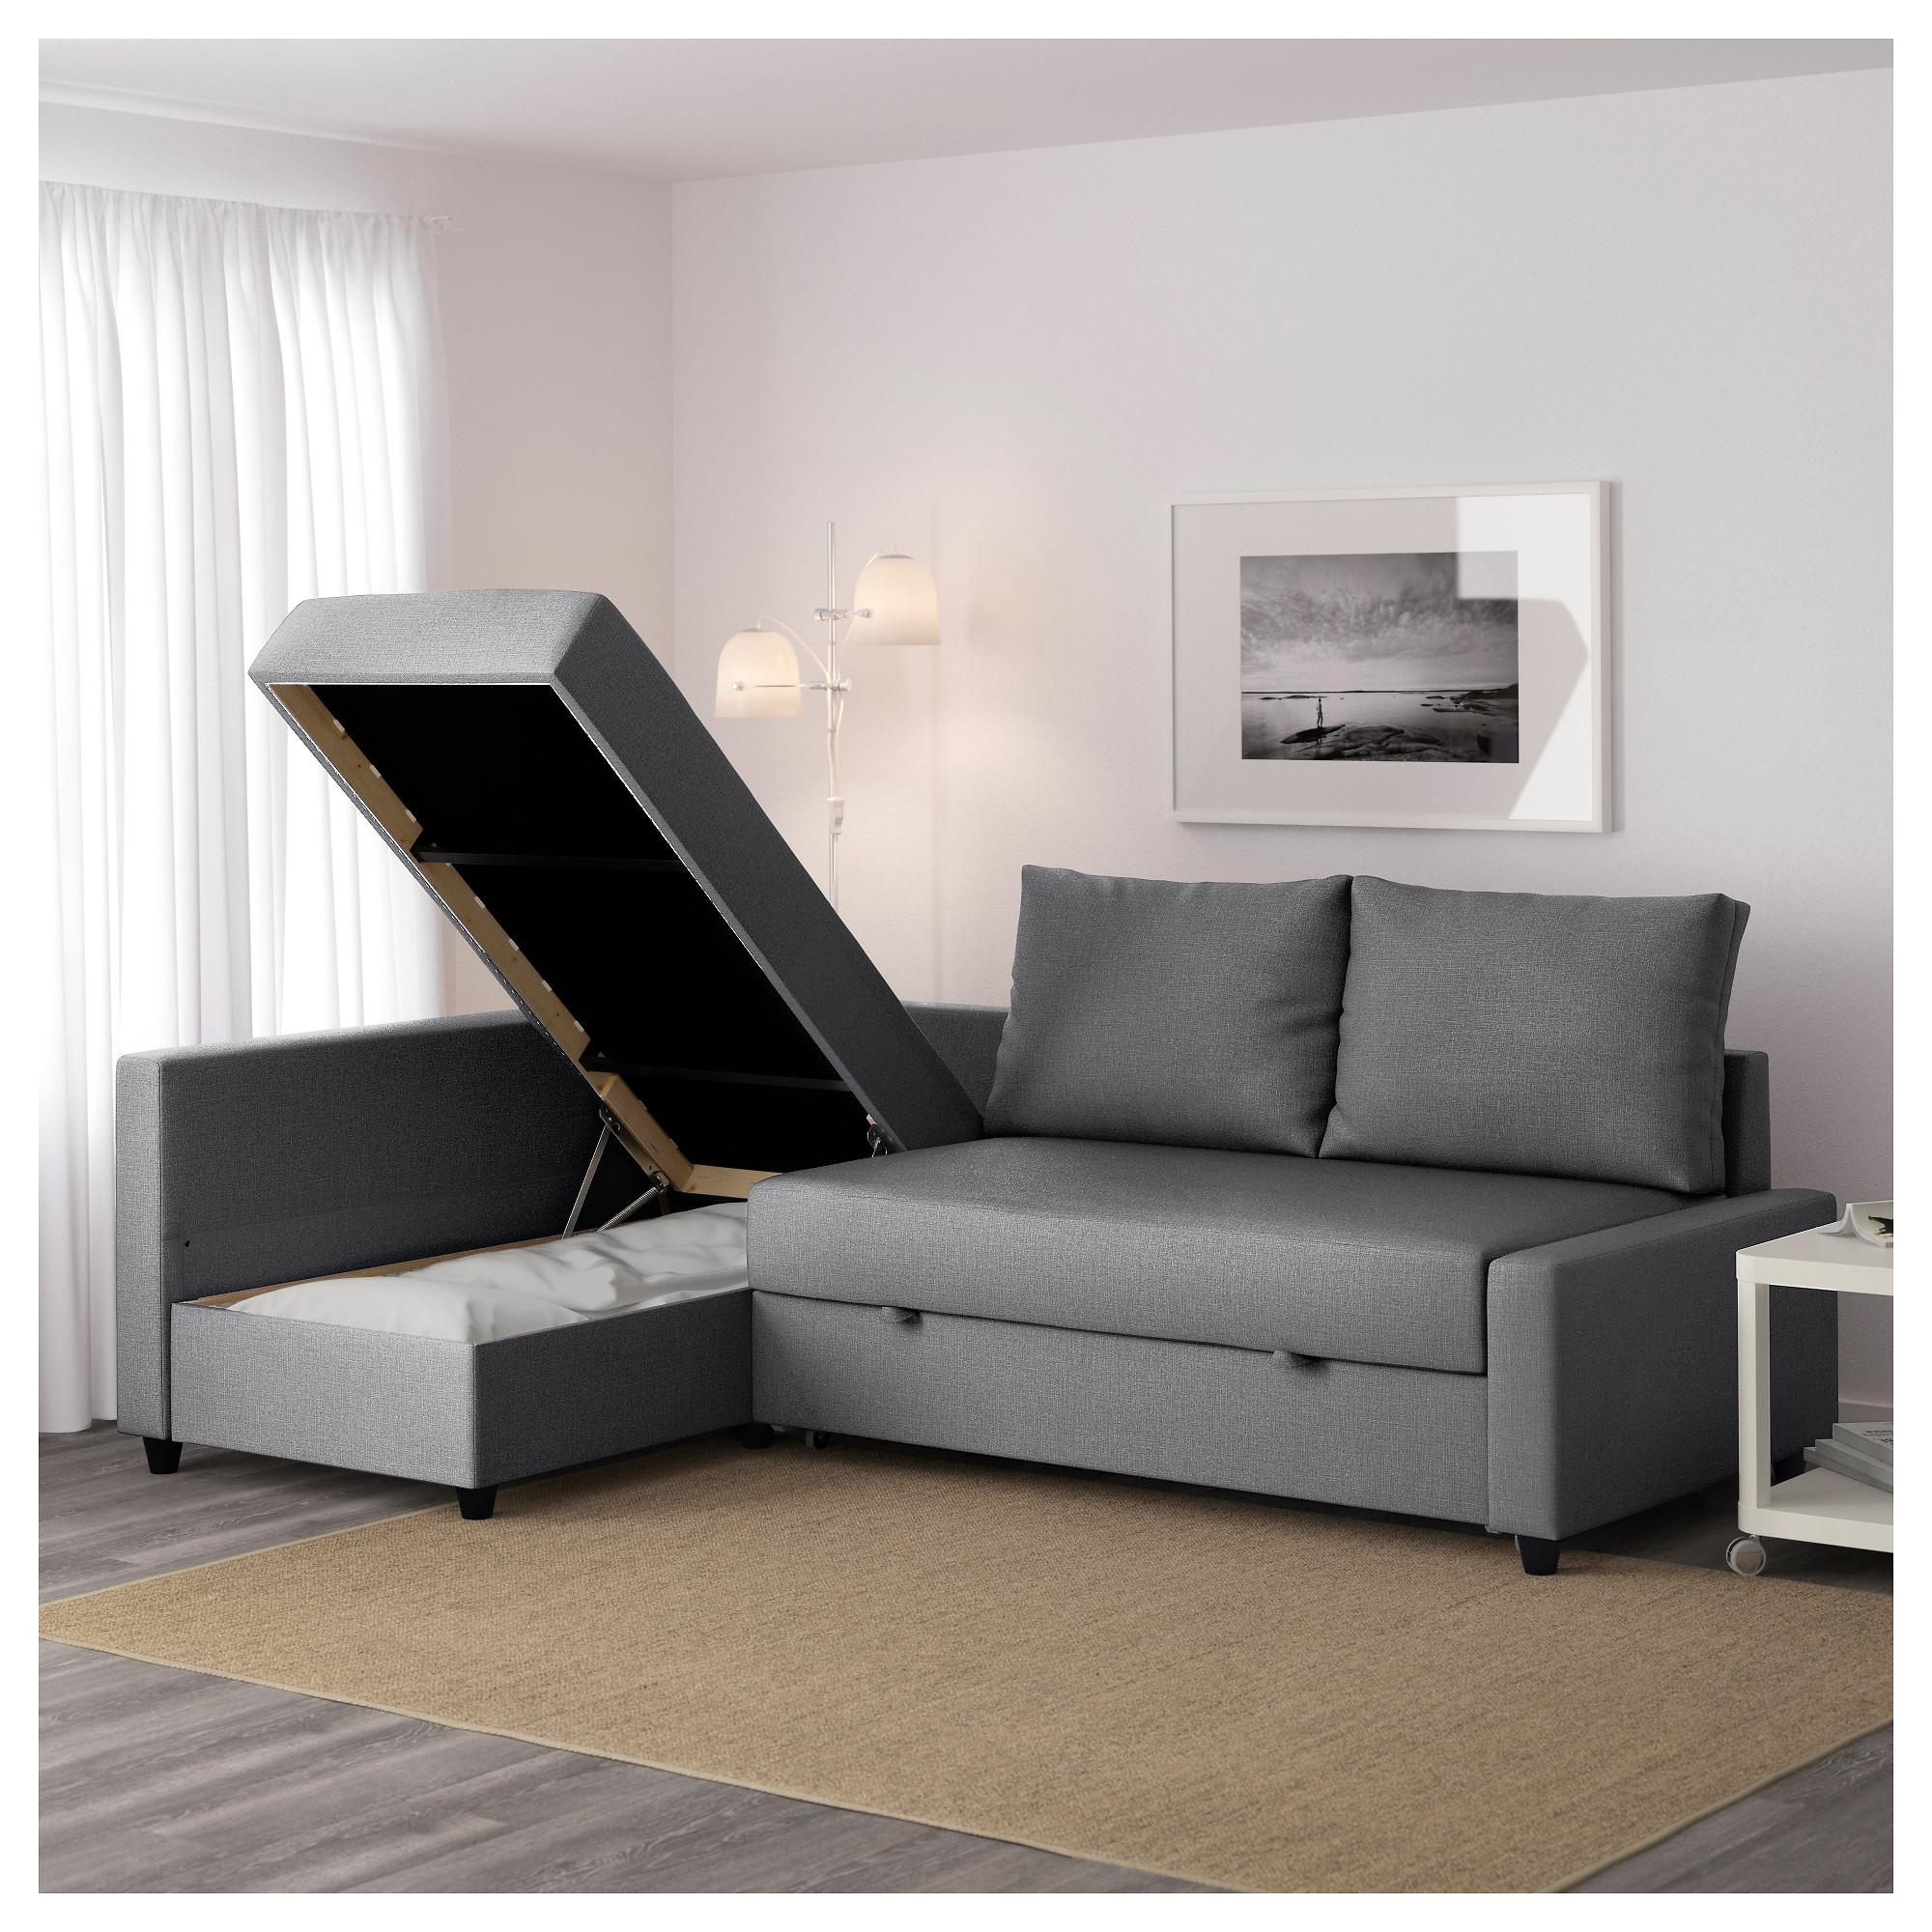 Friheten Corner Sofa Bed With Storage Skiftebo Dark Grey – Ikea With Regard To Ikea Storage Sofa Bed (View 10 of 20)